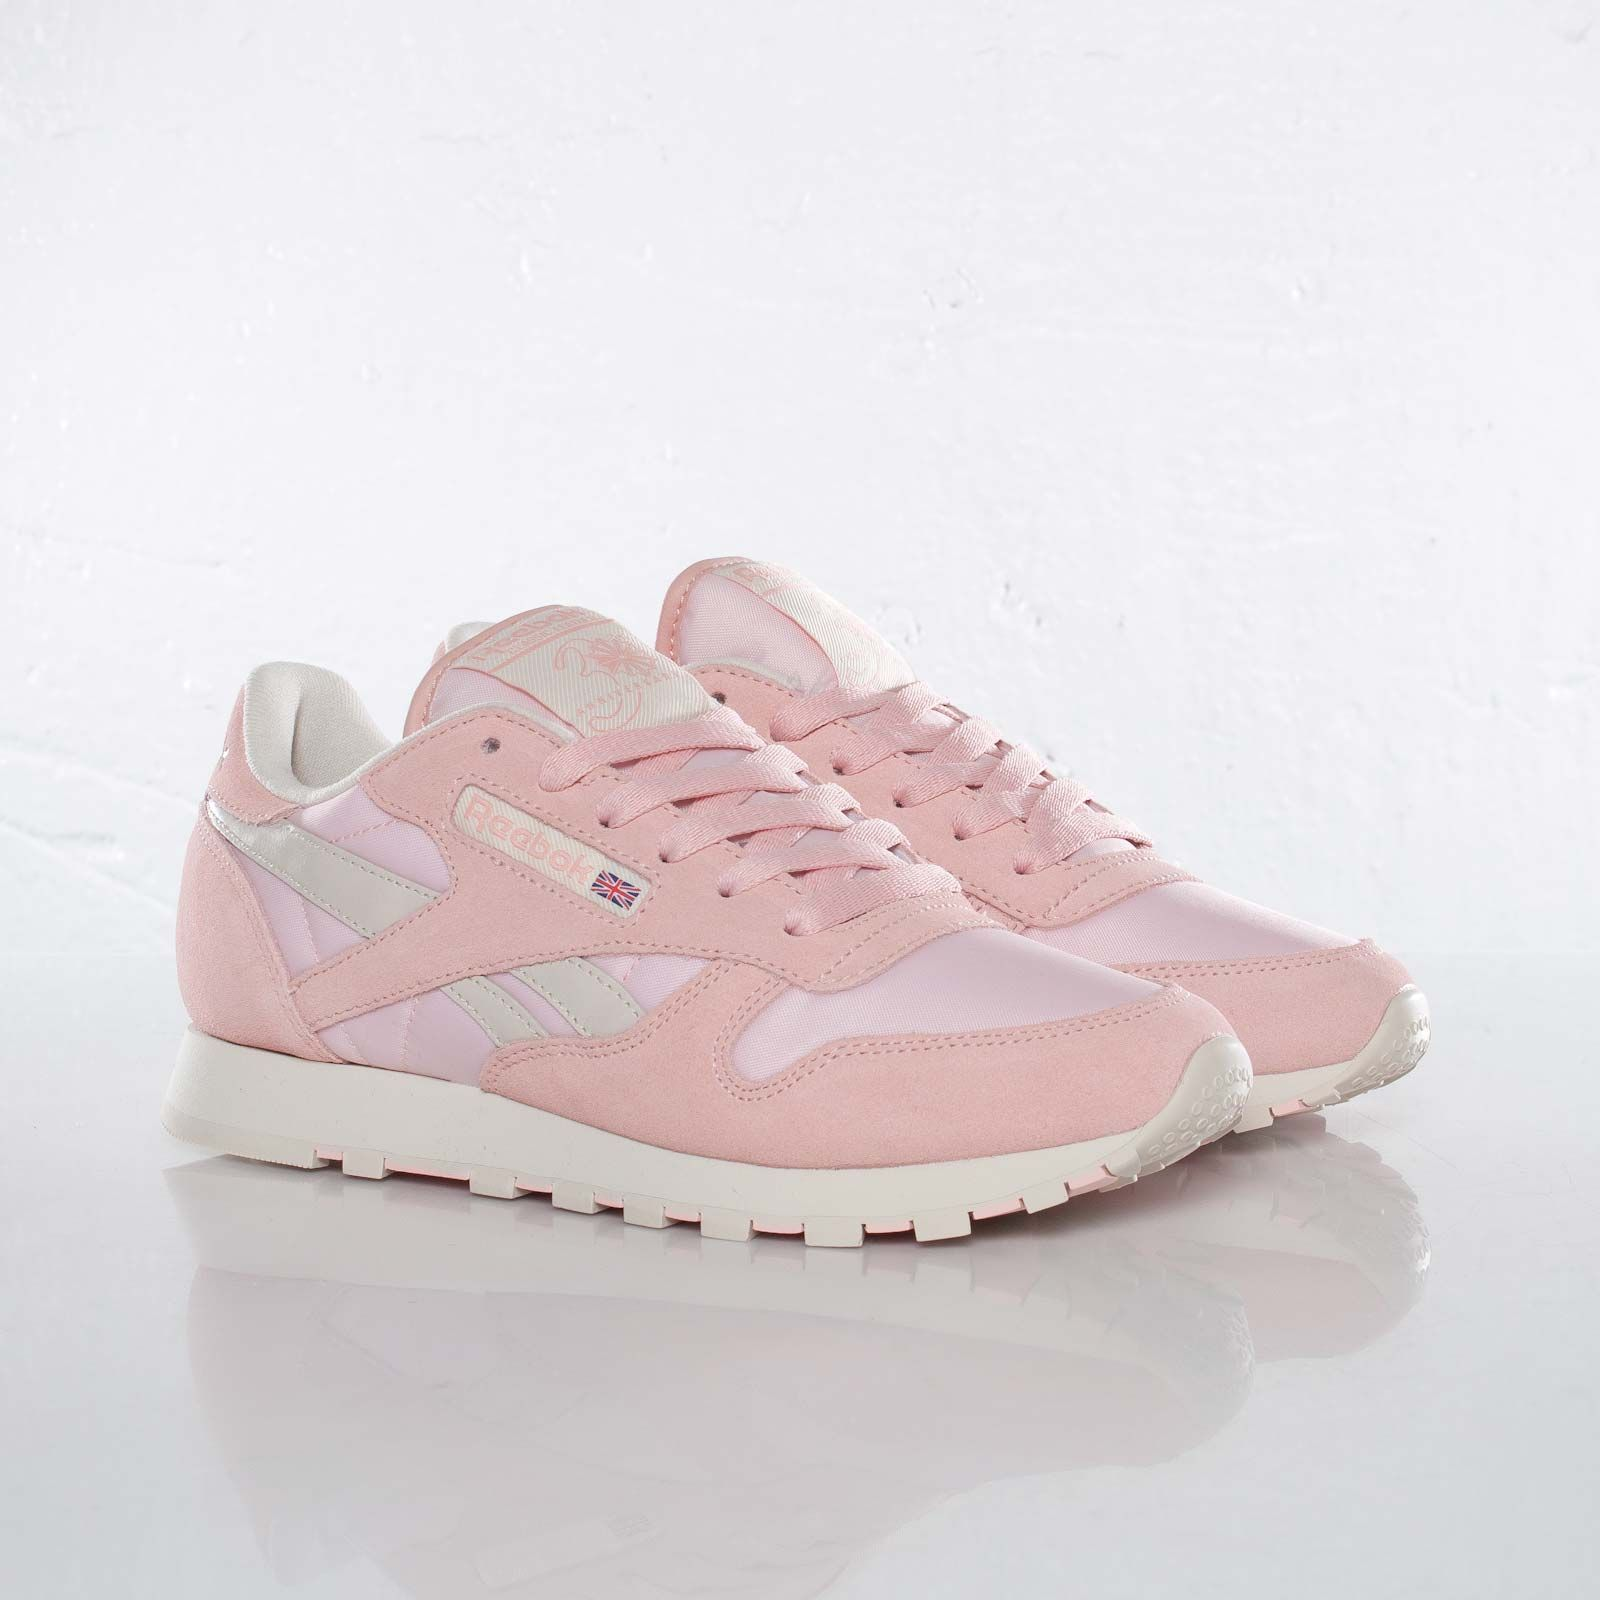 Reebok Classic Leather Pastel Pack Pink